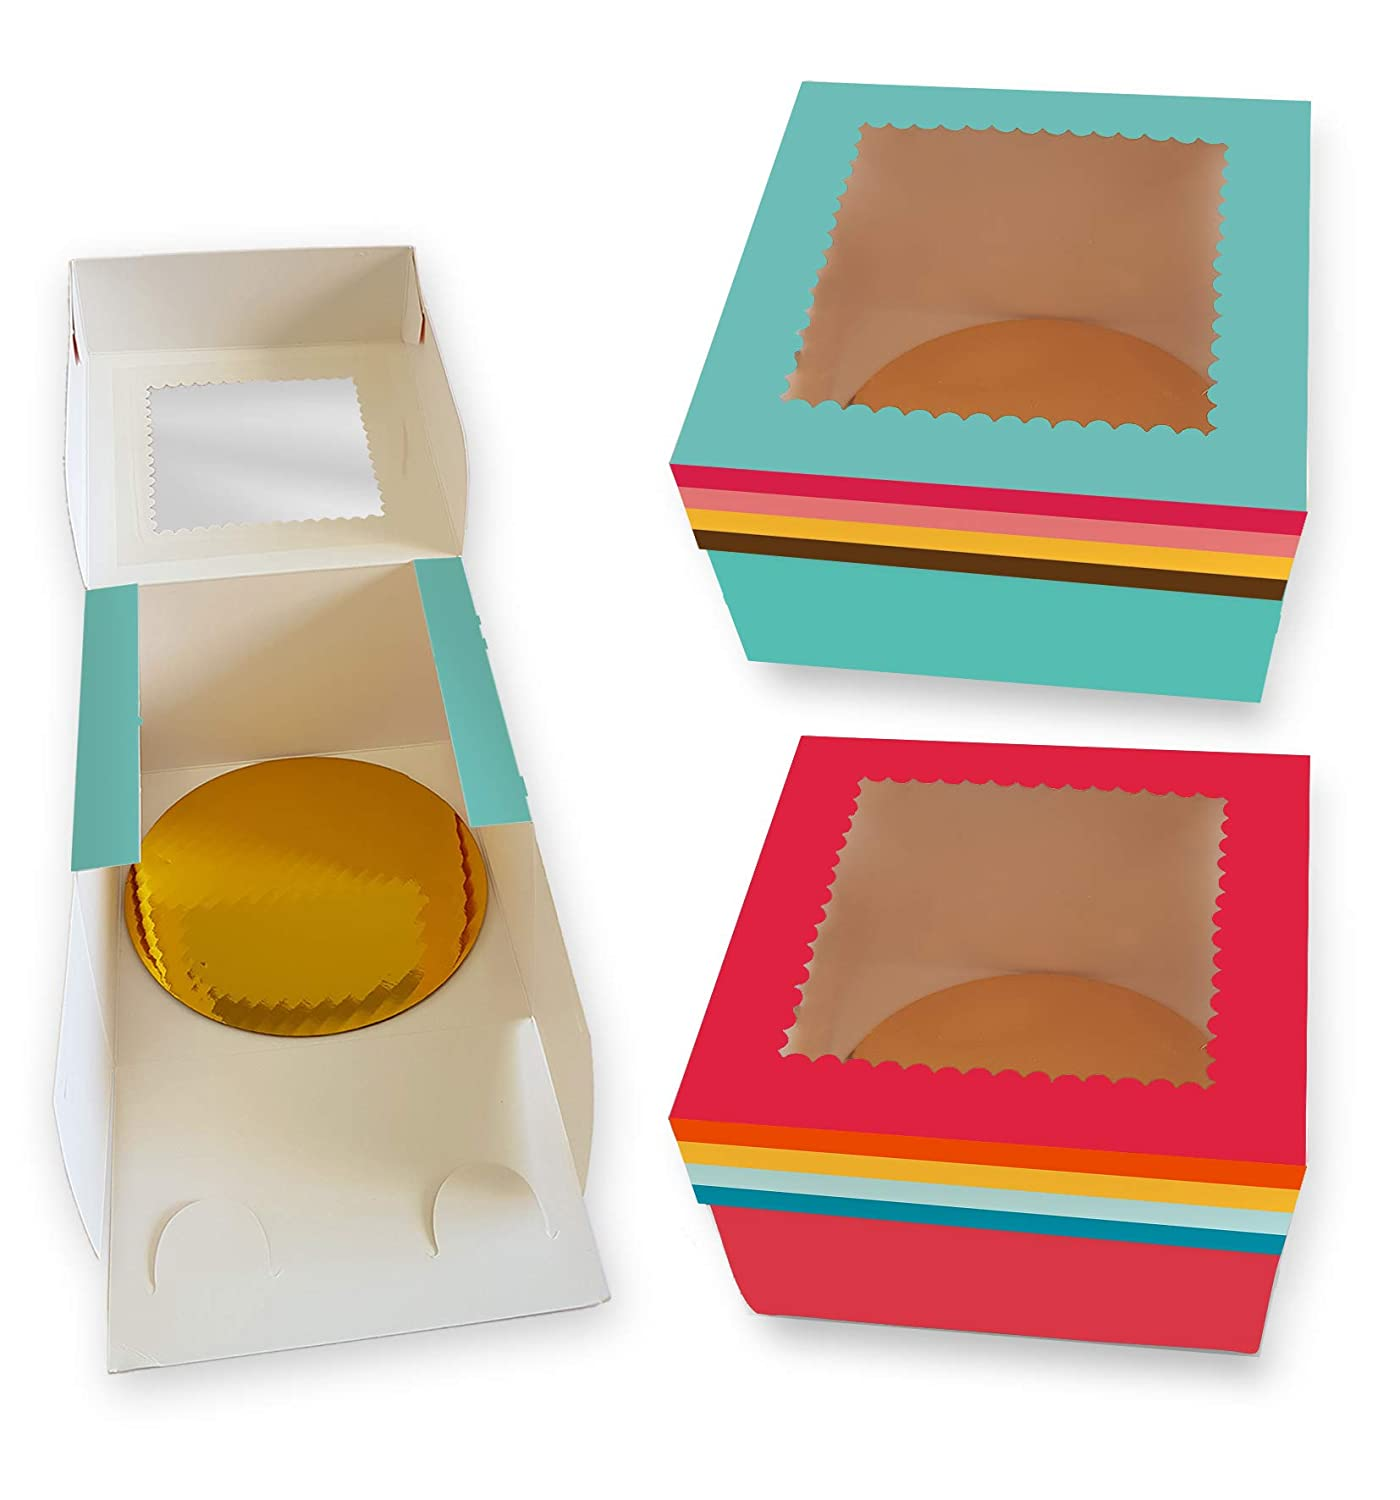 CooKeezz Couture - Cake Boxes 8x8x5 Inch,Rainbow Design Decorated Bakery Box Auto Popup for Cake, Cupcake, Muffins, Macaroons and Cookies - 12 Pack Boxes Included with 12 Cake Round Boards.